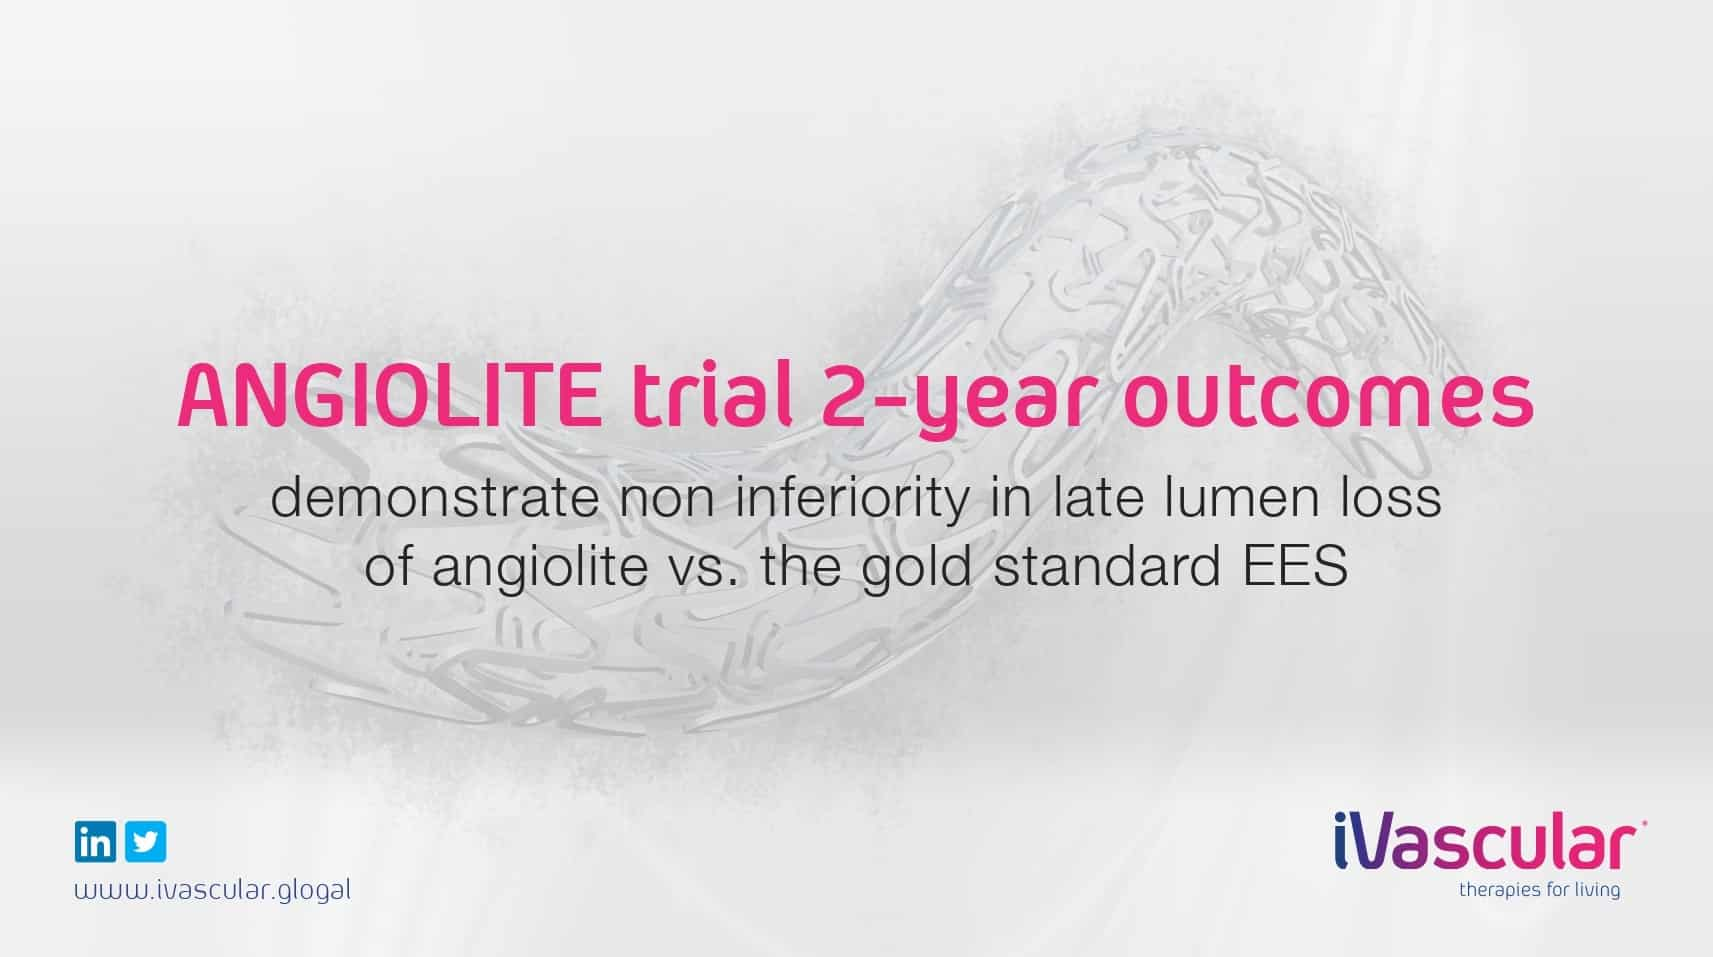 Latest generation DES: ANGIOLITE trial 24-month outcomes revealed at EuroPCR 2019 the non-inferiority of angiolite vs the gold standard EES